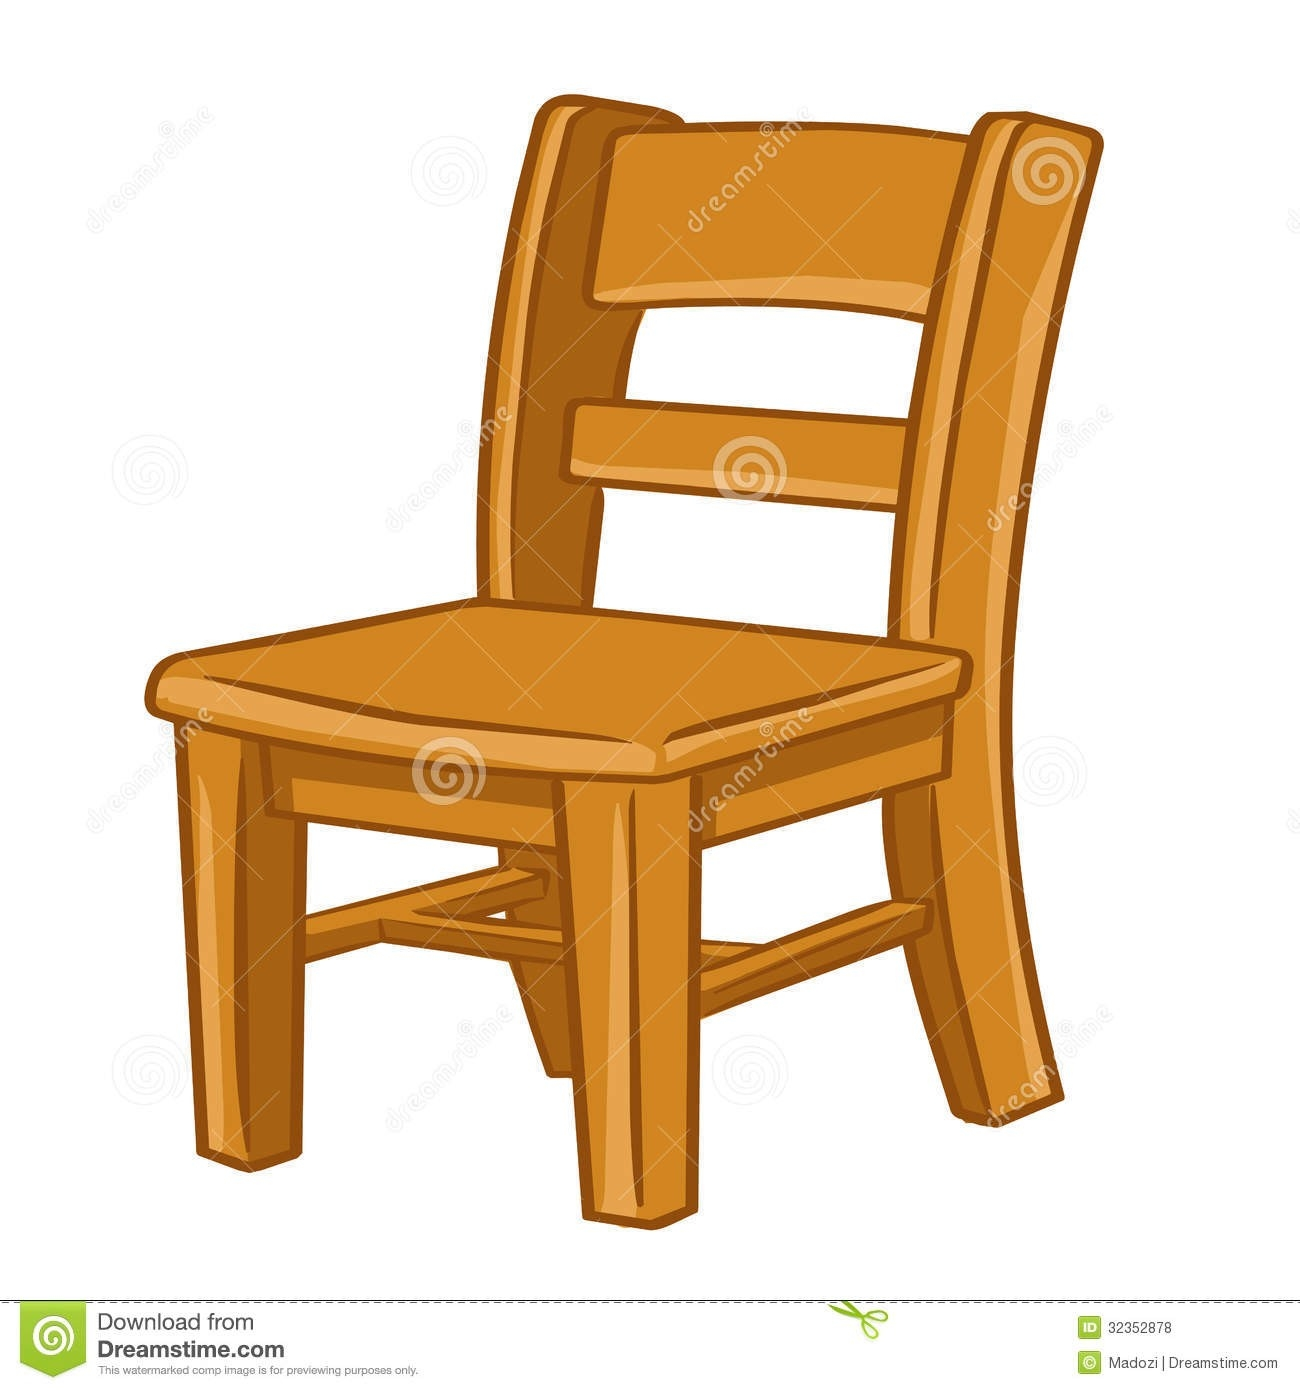 Chair Clipart at GetDrawings.com.